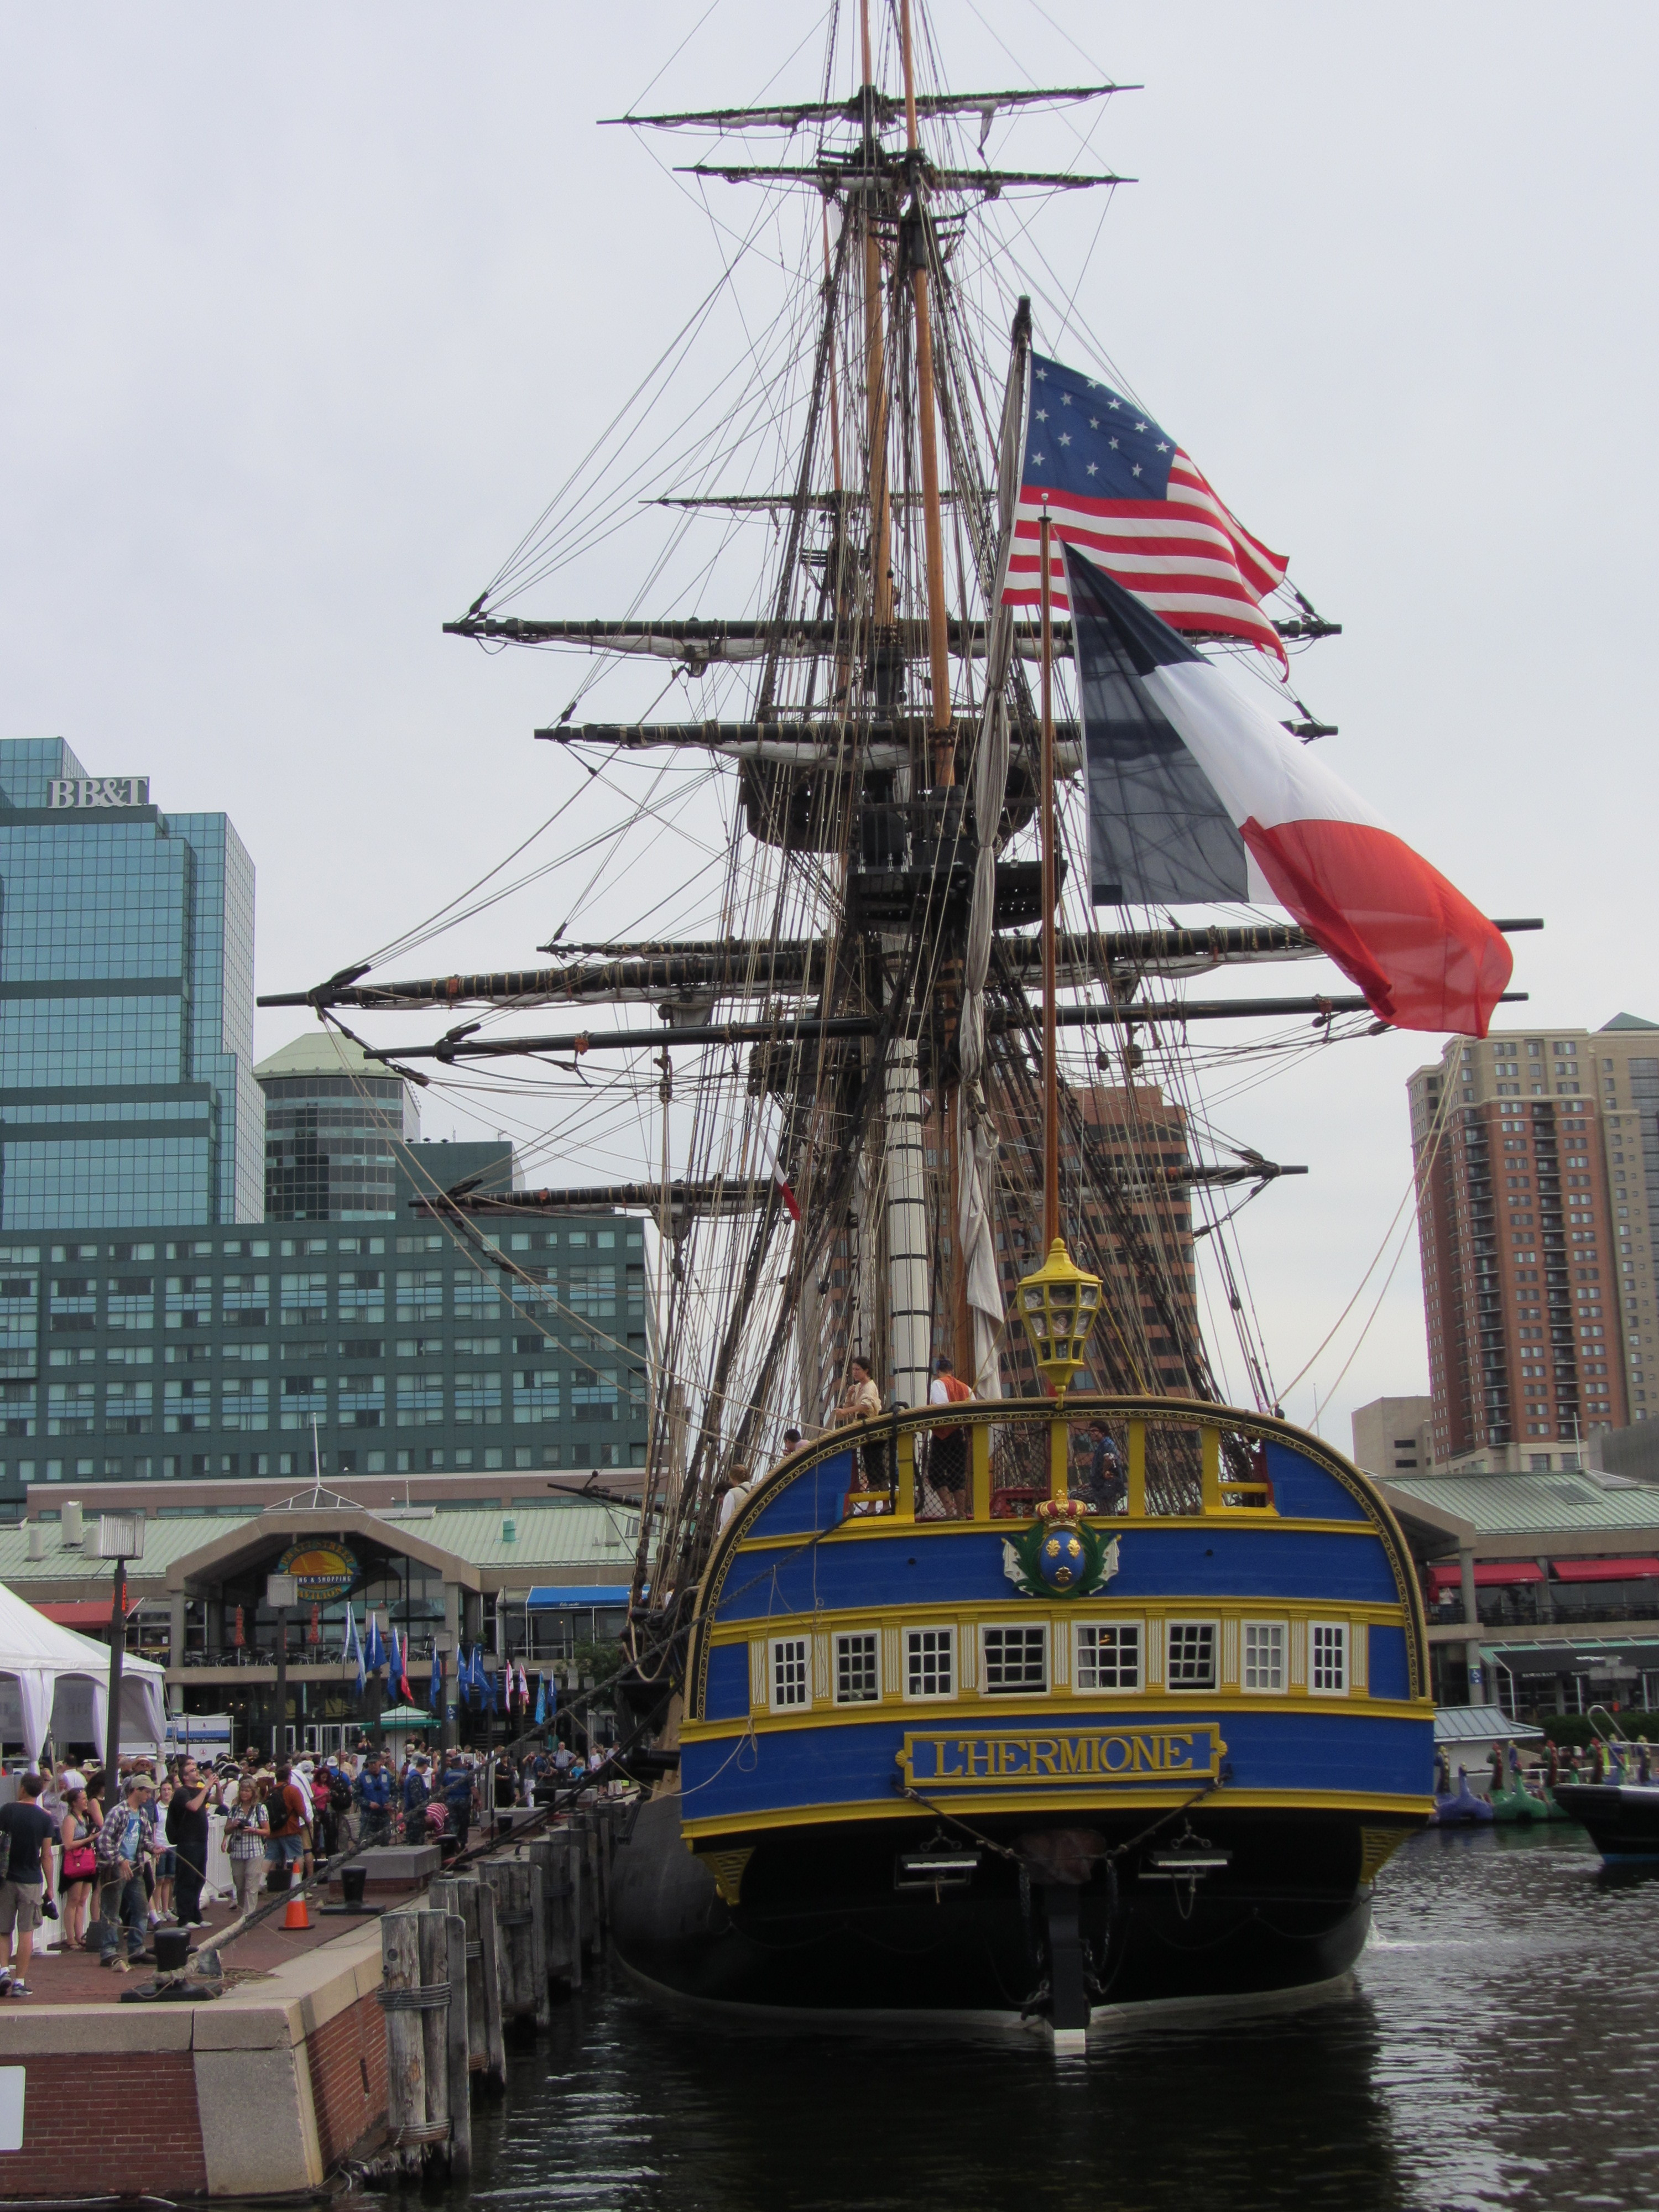 The replica of French frigate Hermione sits at a pier in Baltimore's Inner Harbor prior to a welcome ceremony featuring local and national leaders and officials involved in bringing the historic relic to Baltimore. USNI News photo.